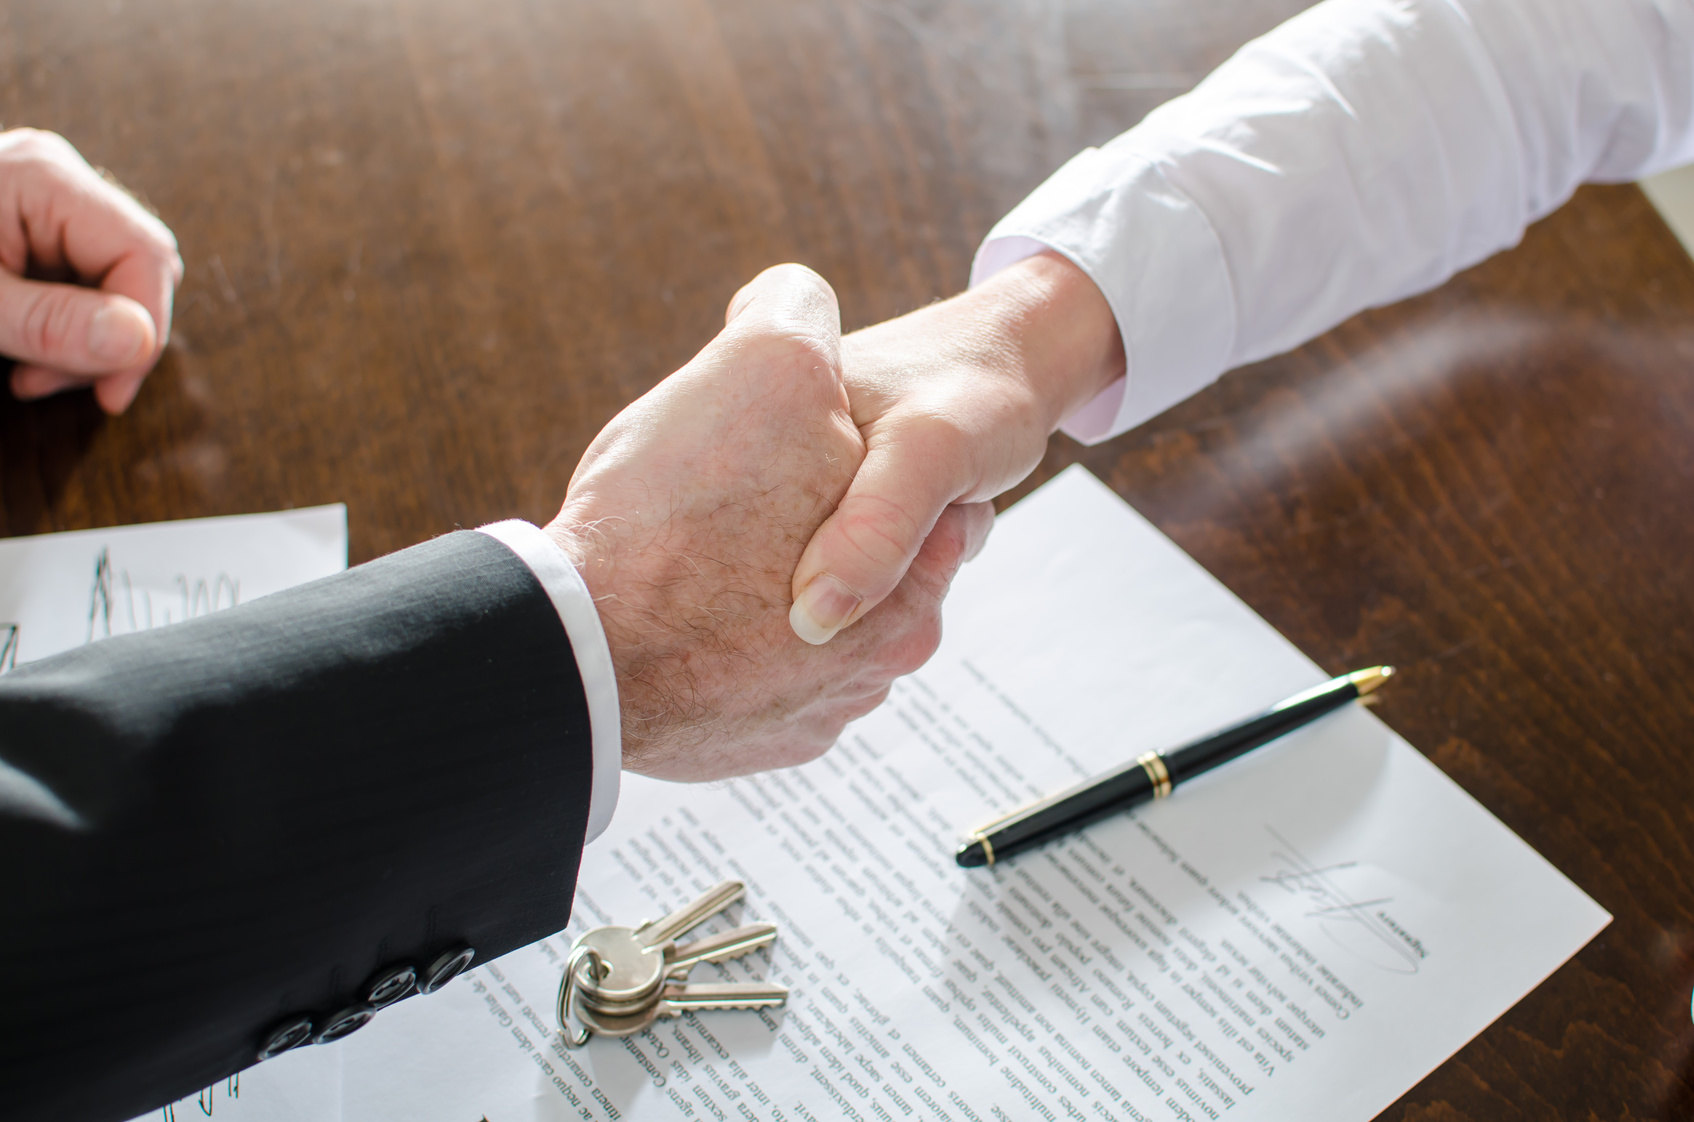 Professional Handshake Between Tenant and Landlord